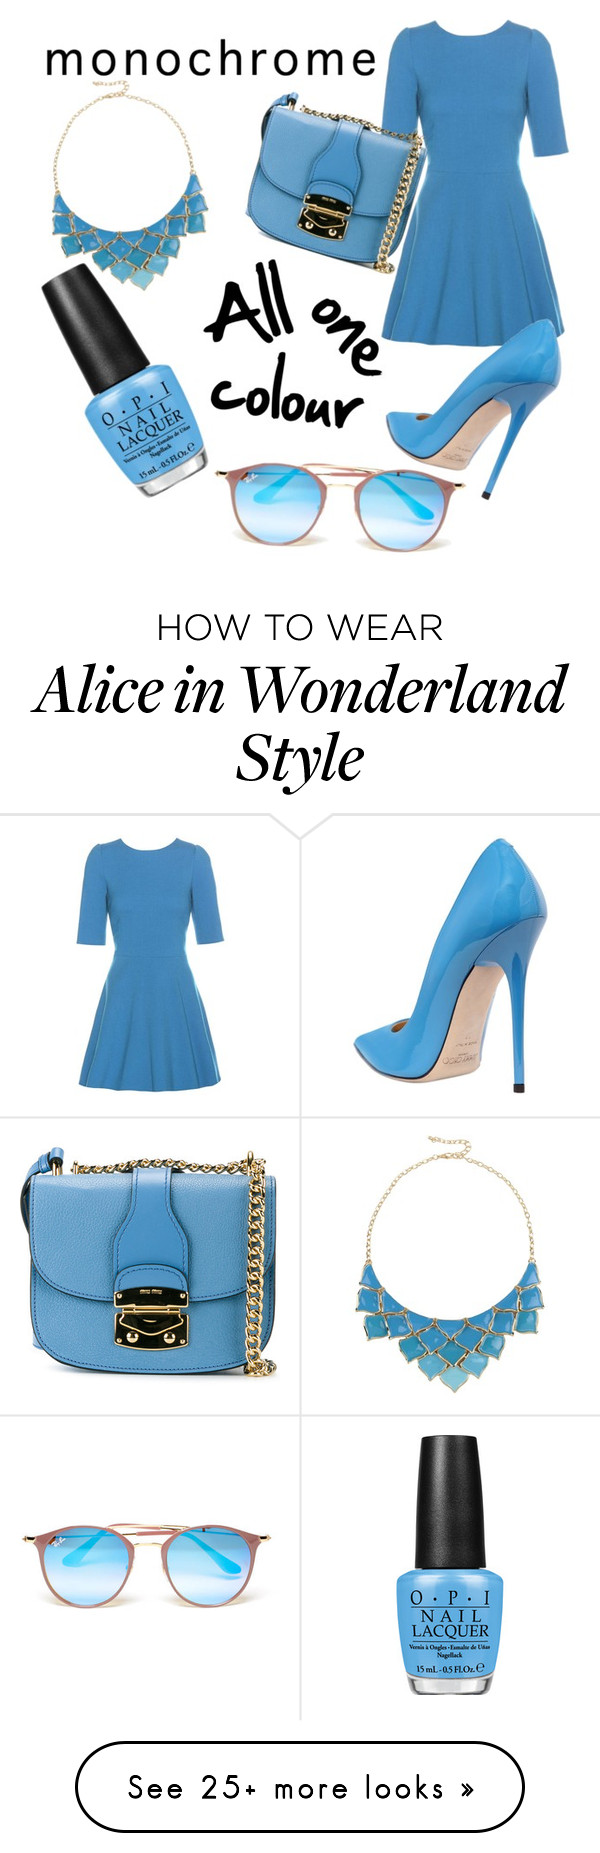 """Monochrome- All one colour"" by dumbledorkalicious on Polyvore featuring Dolce&Gabbana, Jimmy Choo, Miu Miu, George J. Love, OPI and Ray-Ban"